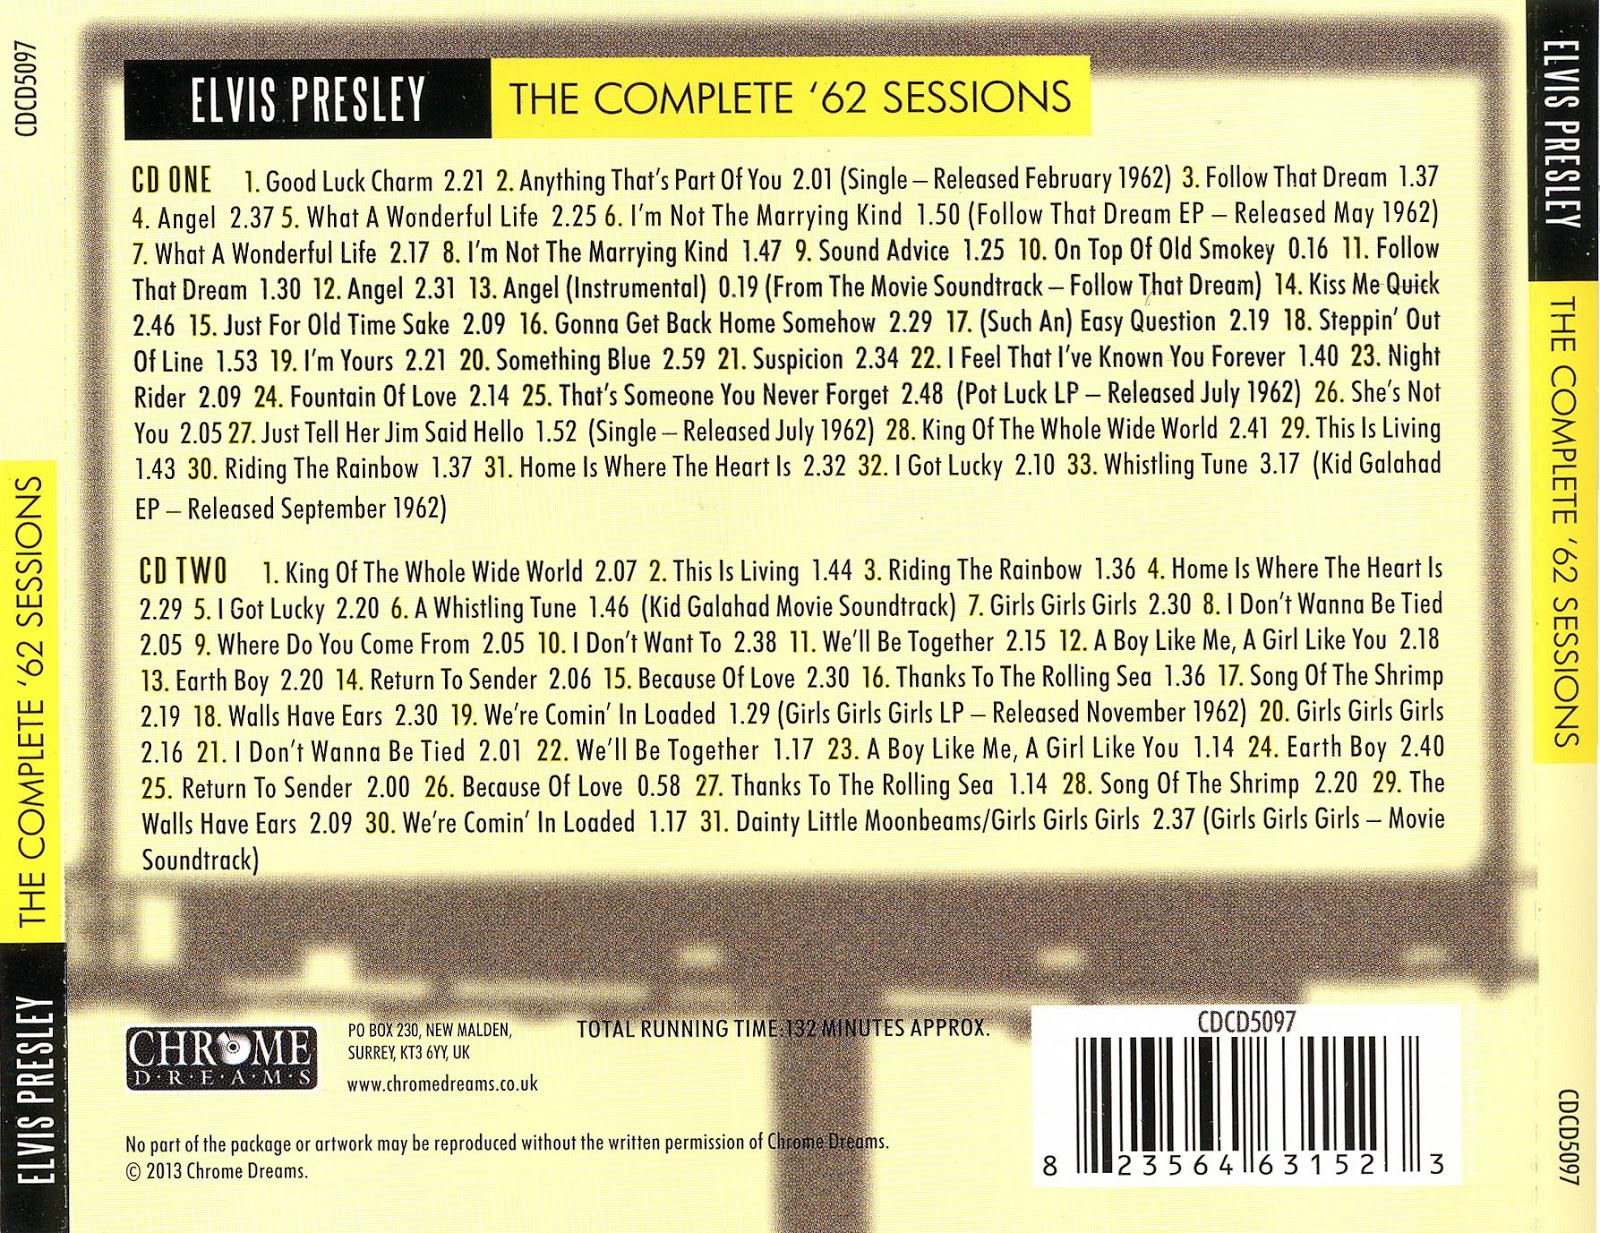 Reliquary: Elvis Presley - The Complete \'62 Sessions (Chrome Dreams)